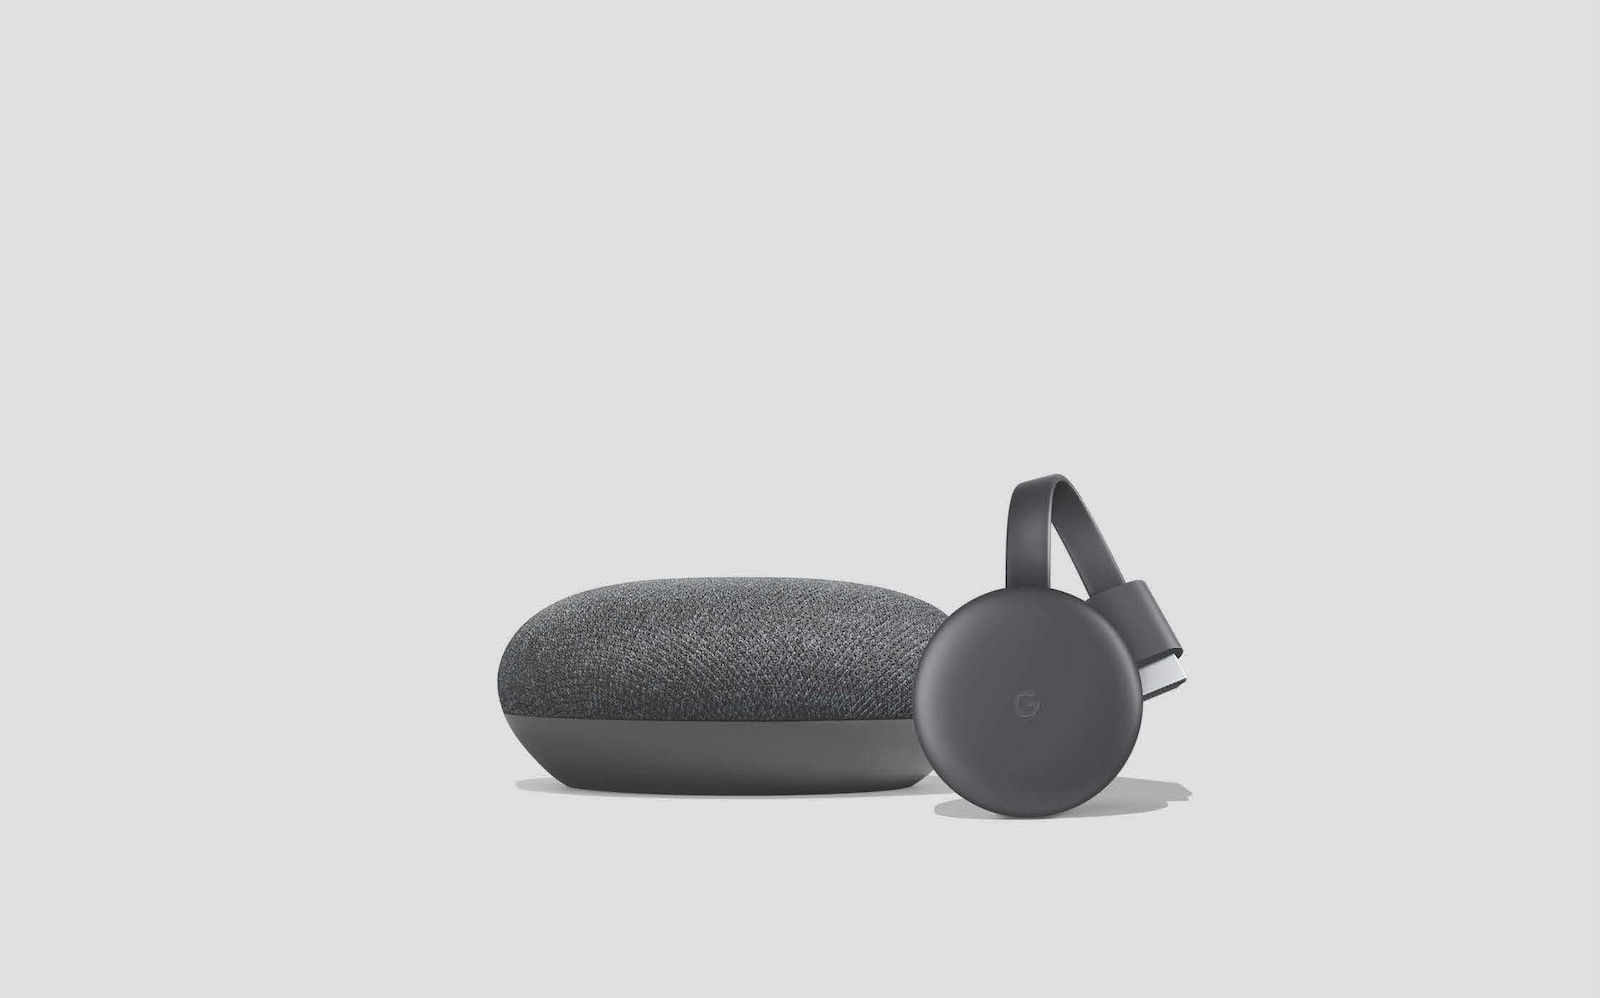 If you luck out, you can score this Chromecast/Home Mini bundle for $13